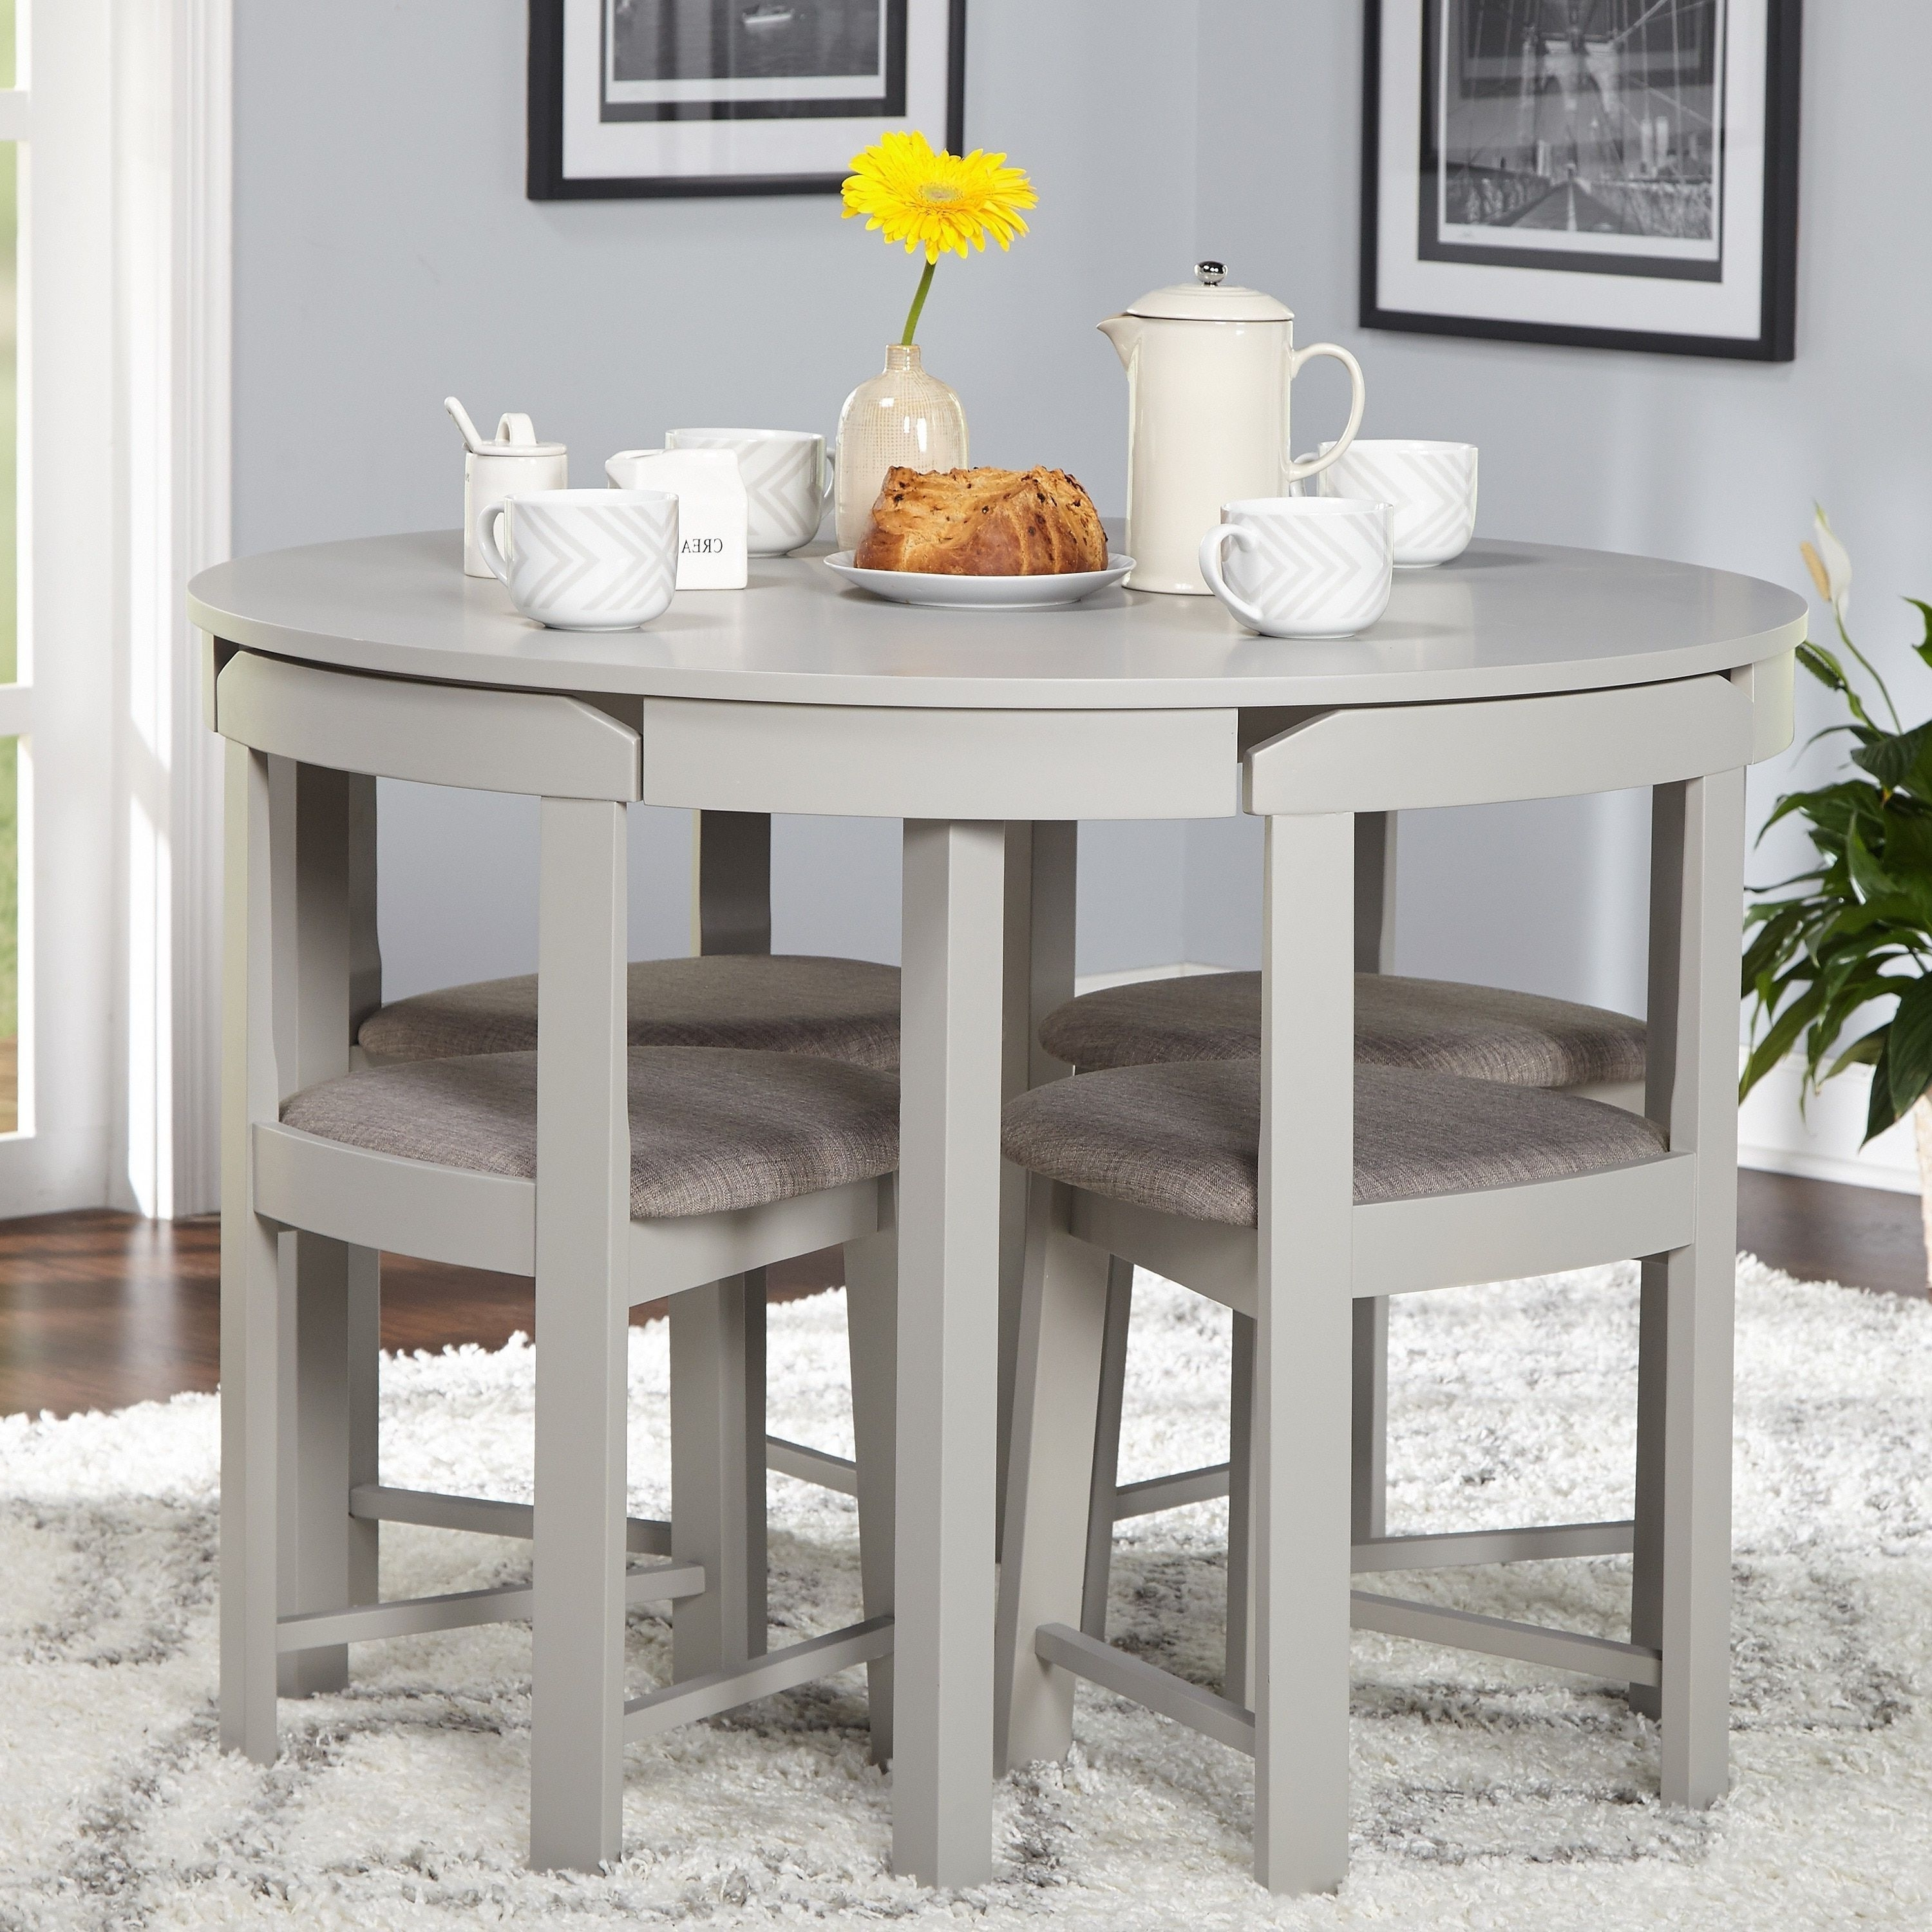 Perfect For Smaller Spaces The 5 Piece Tobey Compact Dining Set Intended For Popular Lassen Extension Rectangle Dining Tables (View 19 of 25)